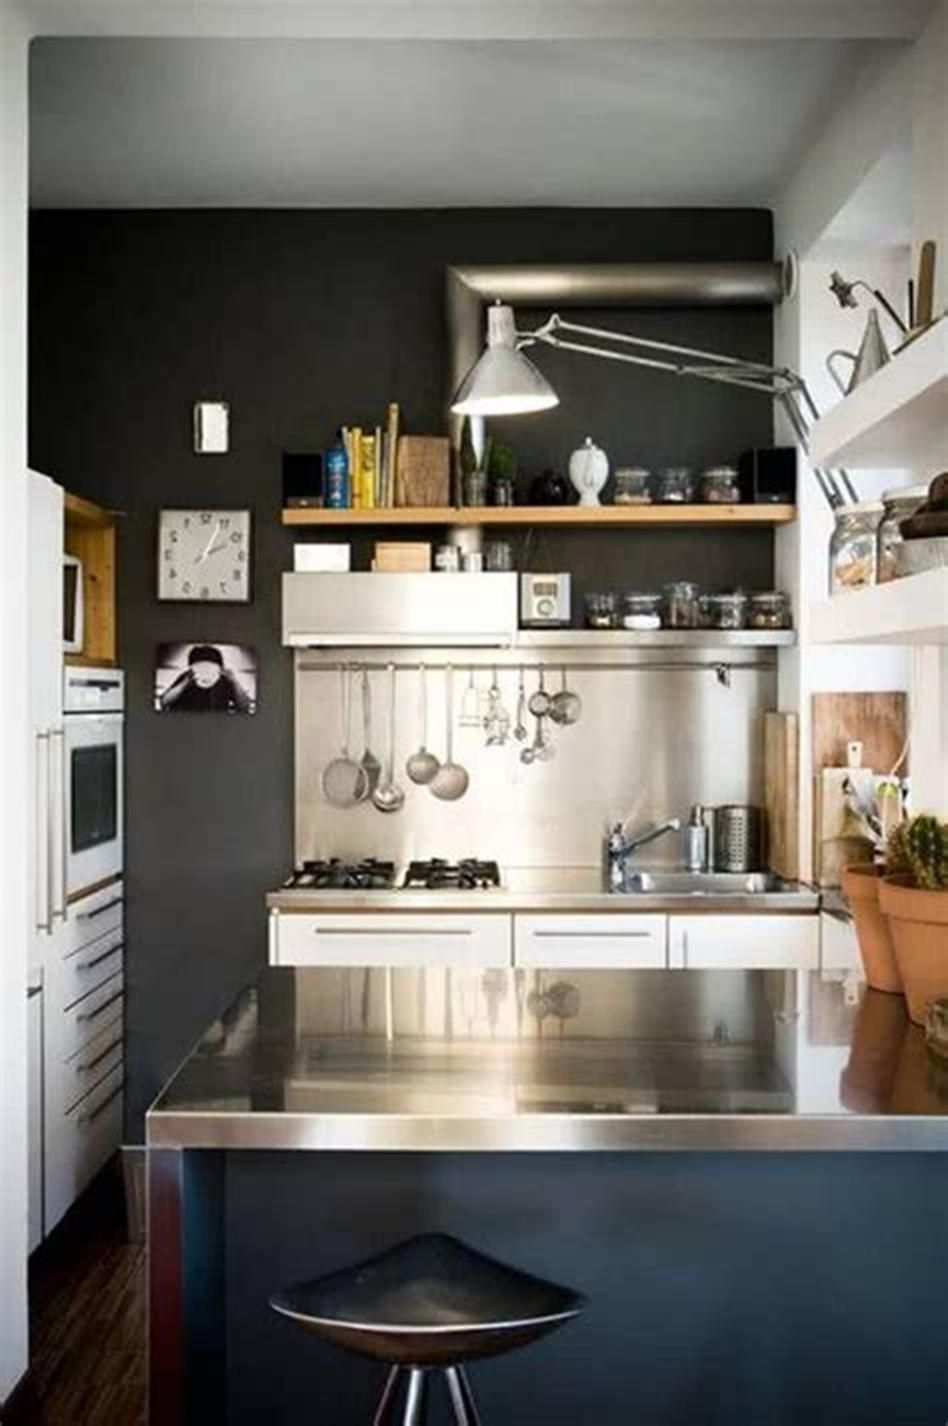 50+ Amazing Modern Kitchen Design Ideas for Small Spaces